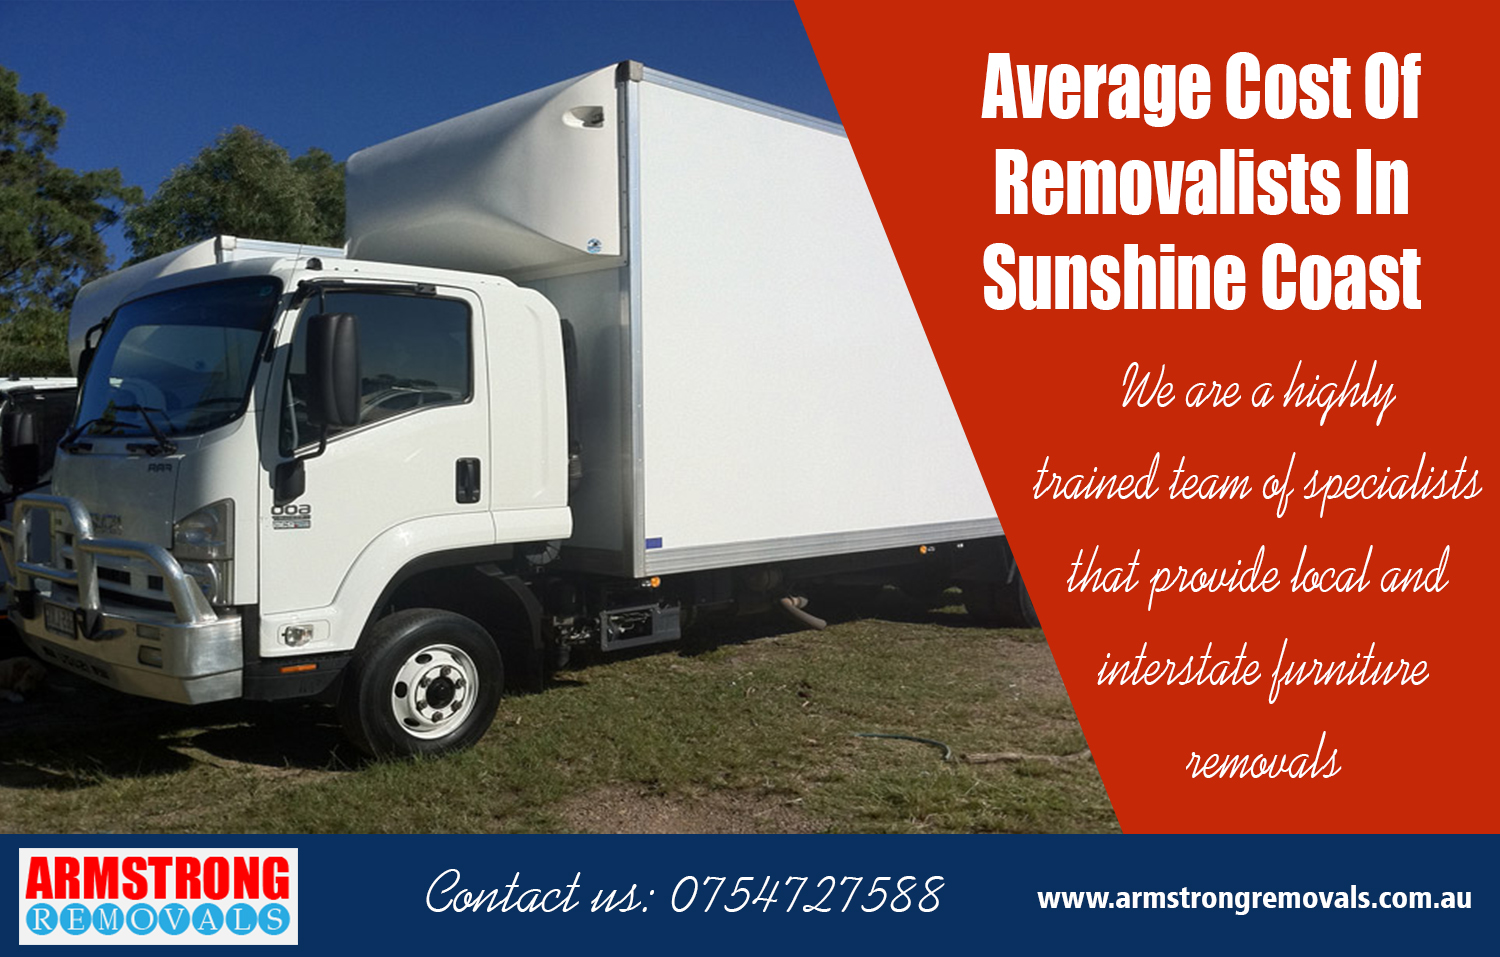 Average Cost Of Removalists In Sunshine Coast